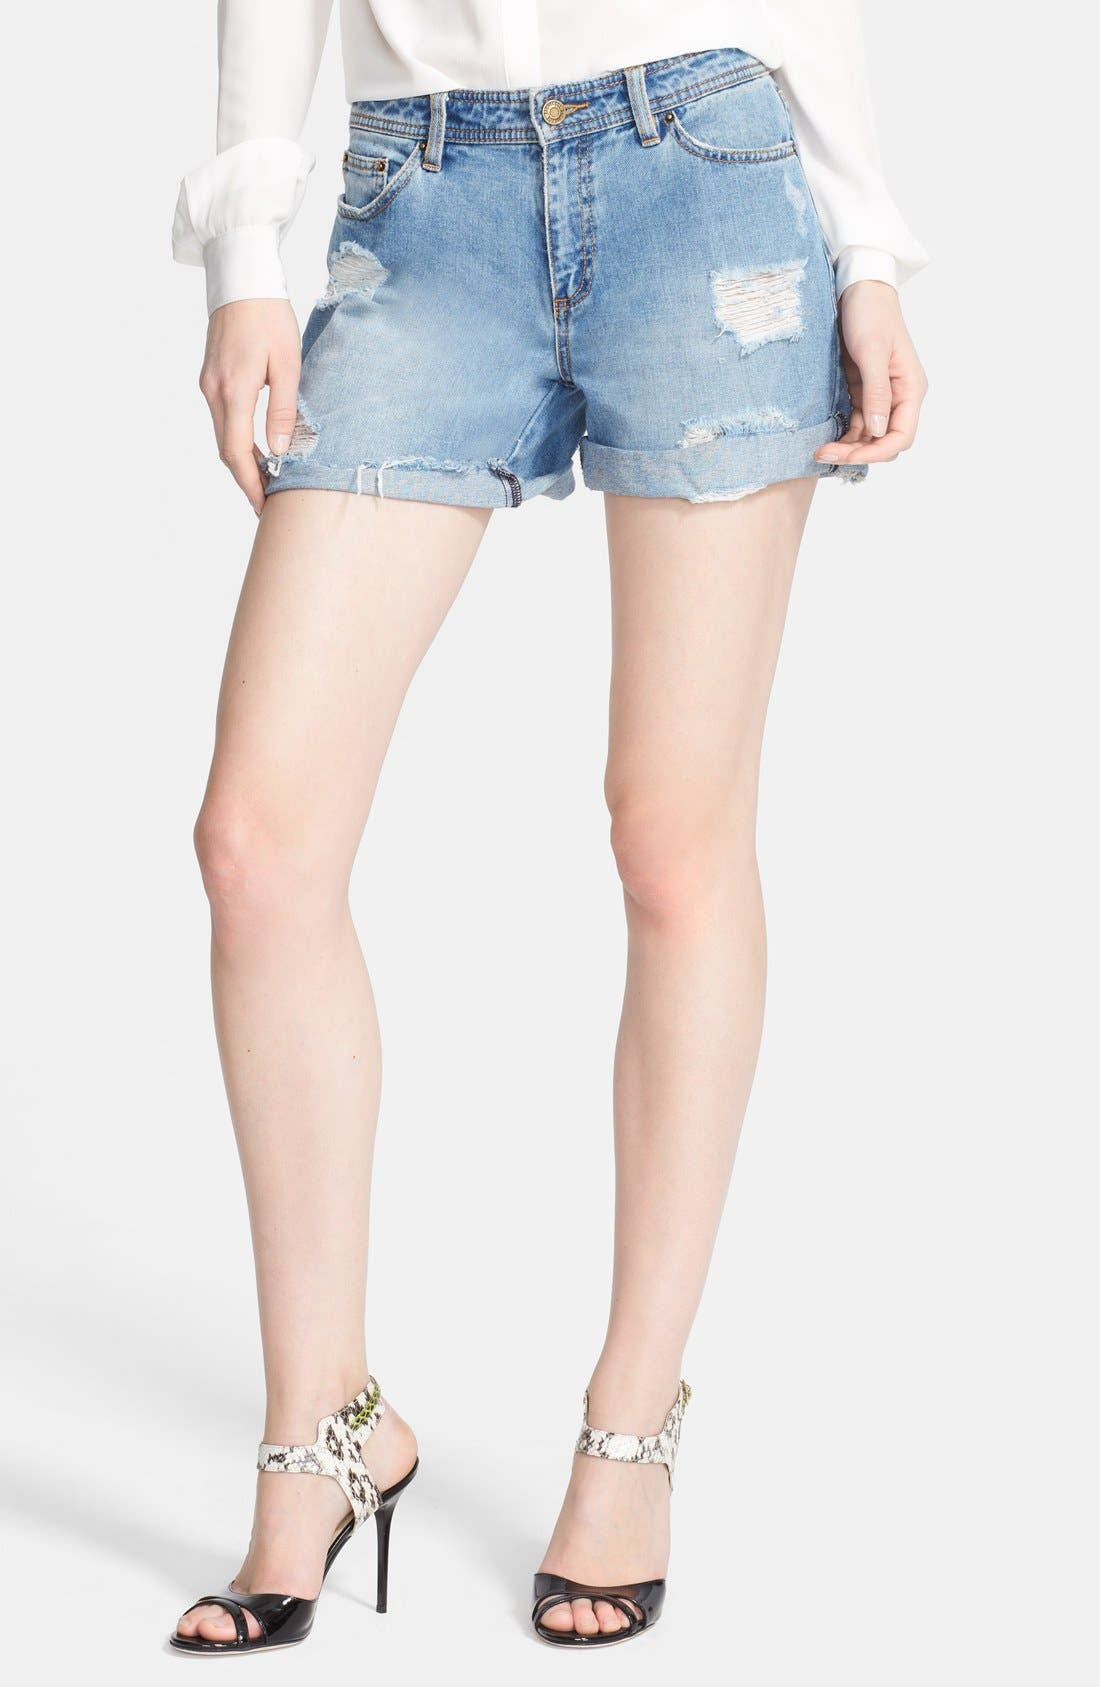 Main Image - Rachel Zoe 'Jocelyn' Destroyed Boyfriend Jean Shorts